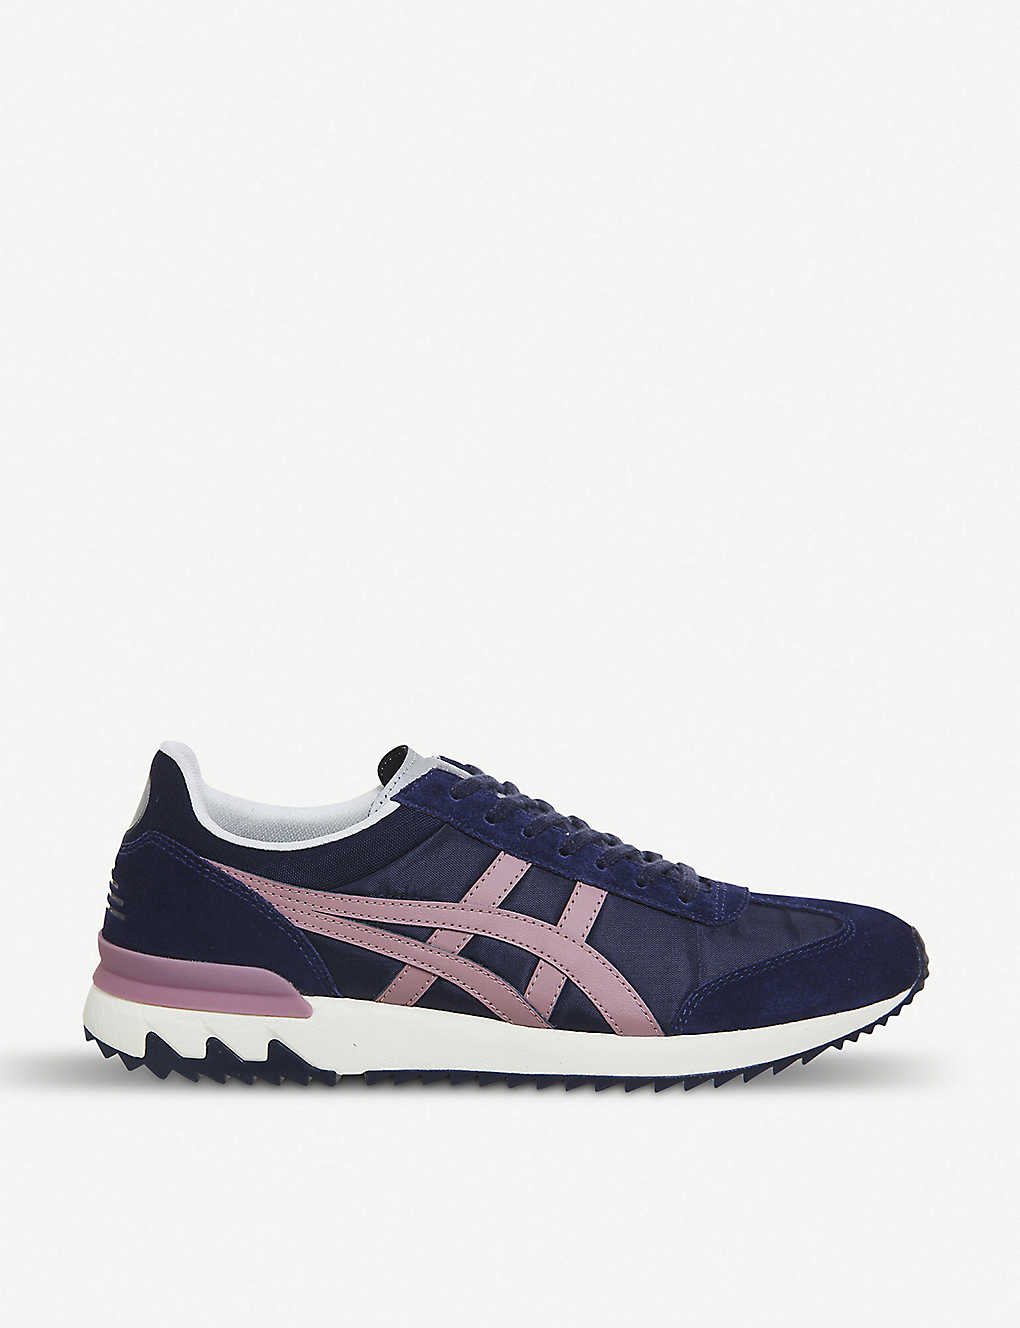 3cfbc9e98a5 ASICS - California 78 Ex suede and nylon sneakers